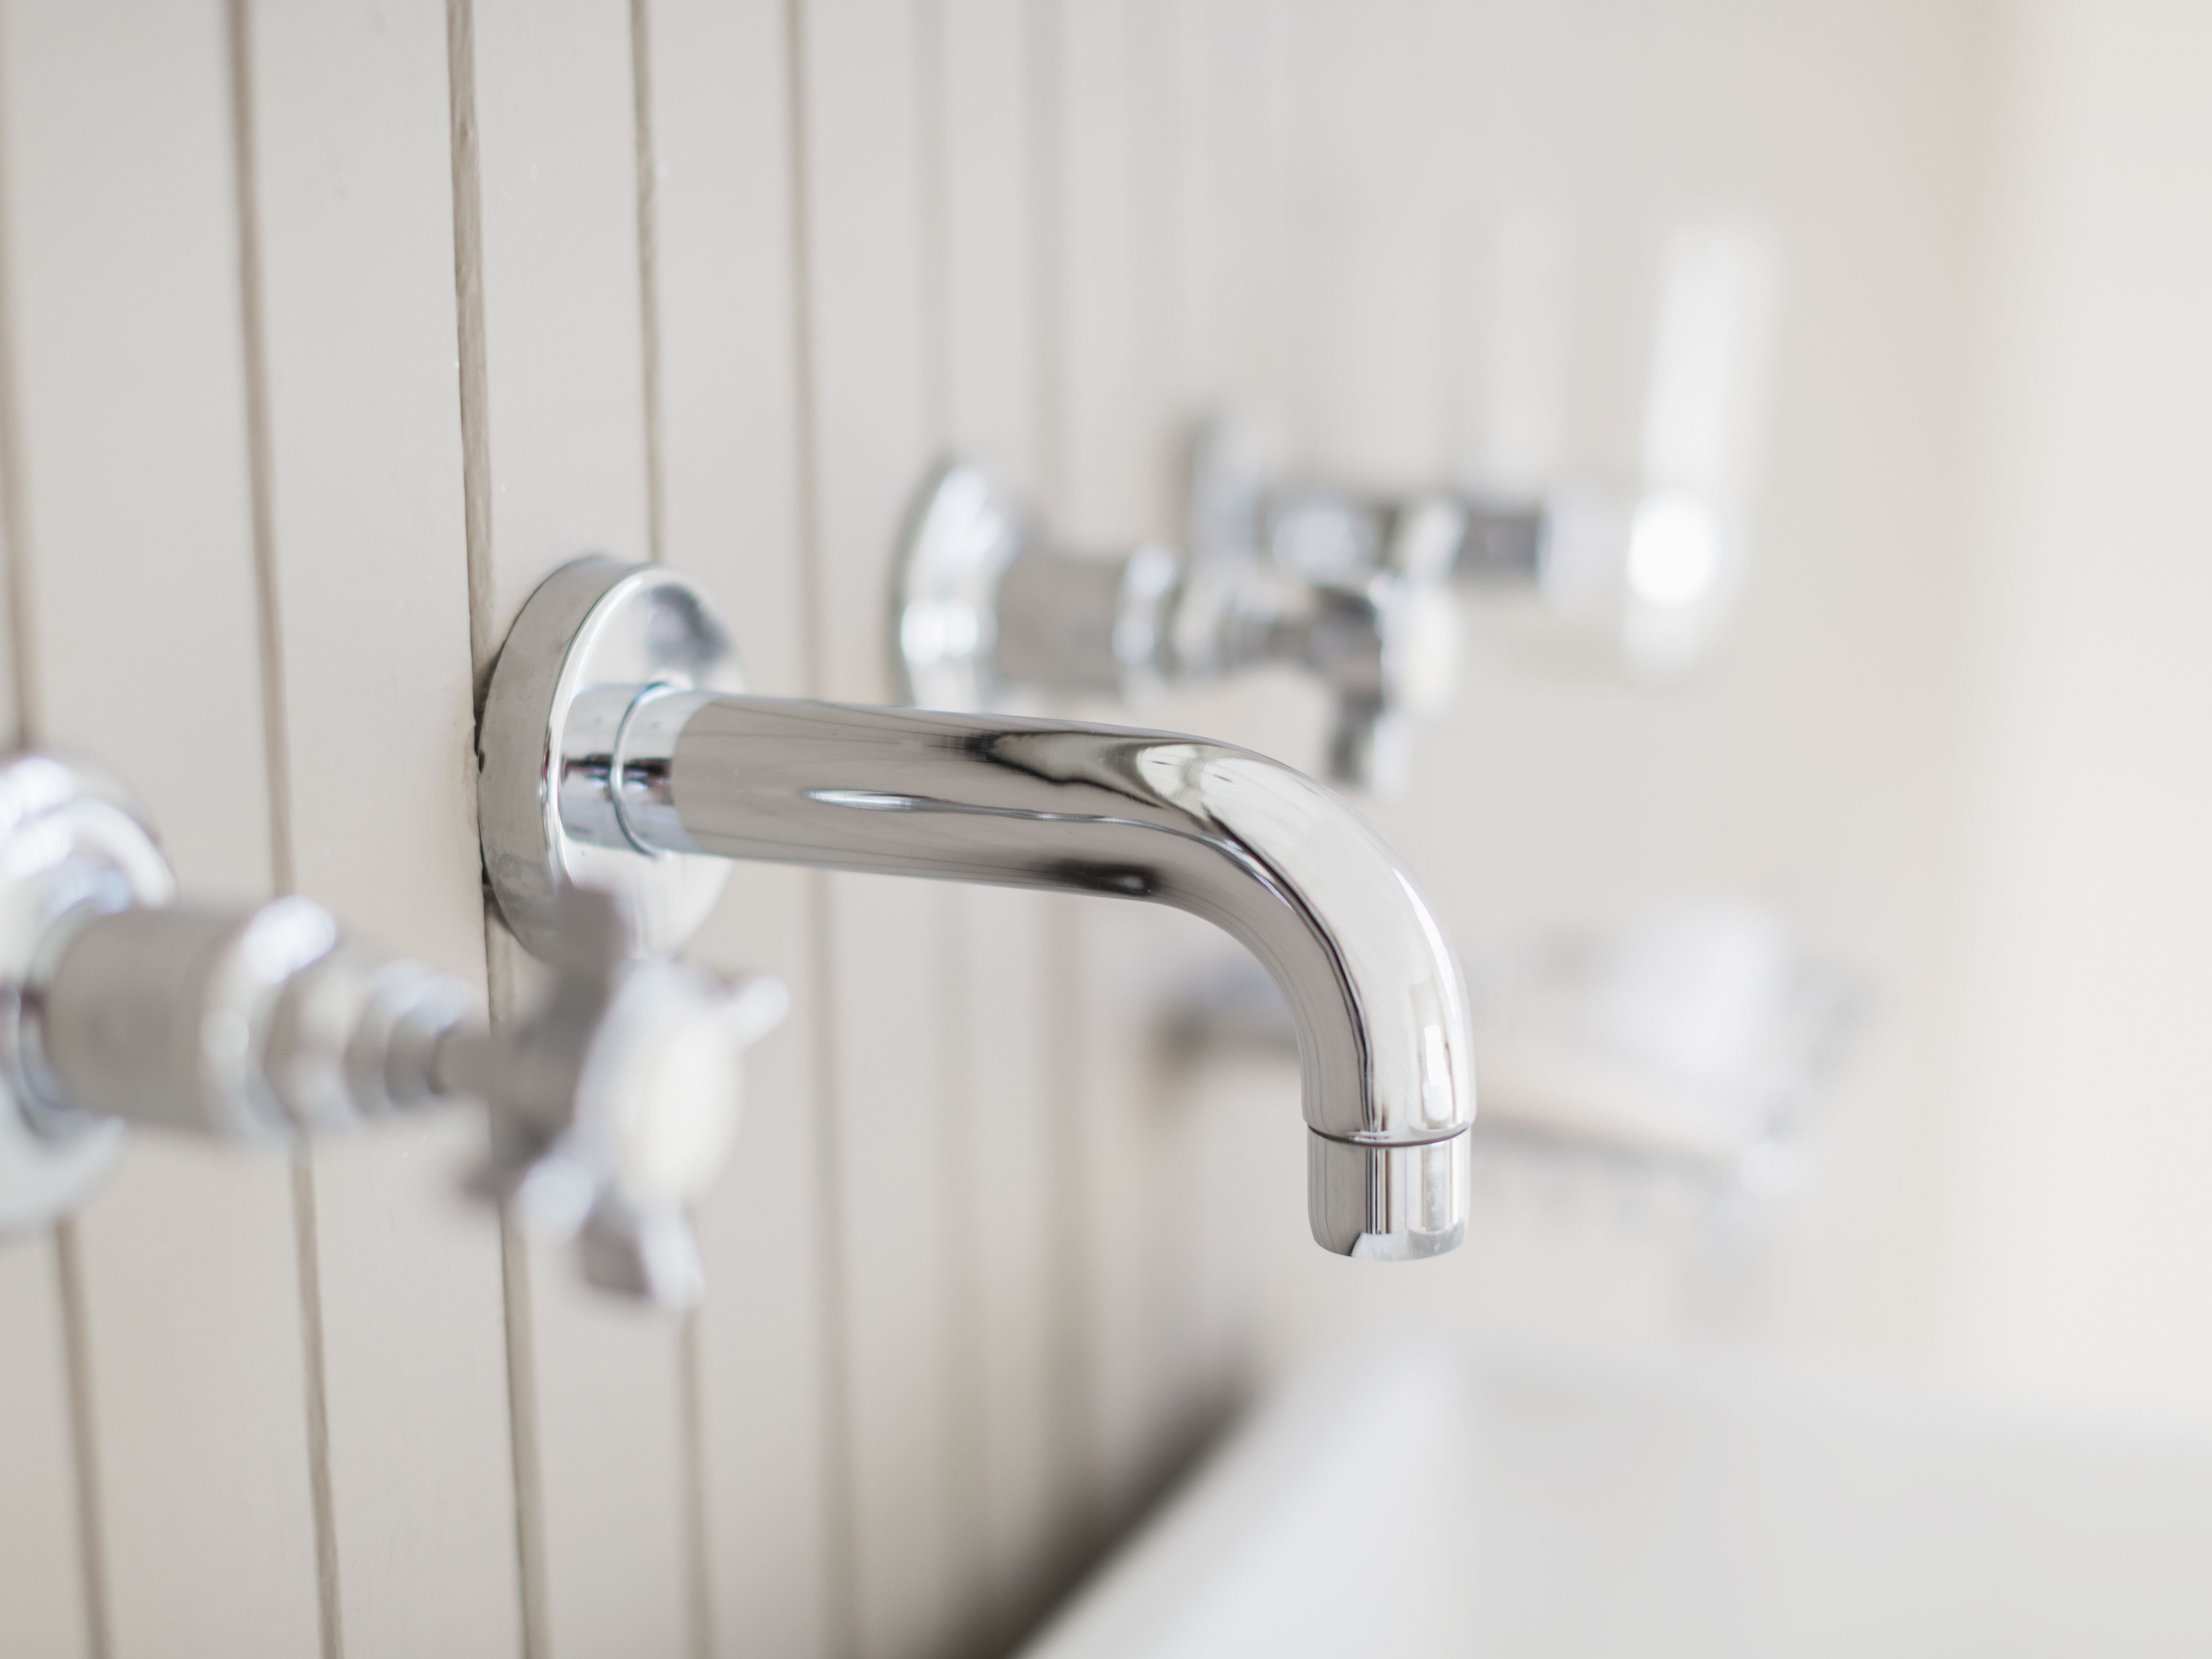 Picture of: How To Remove And Replace A Tub Spout